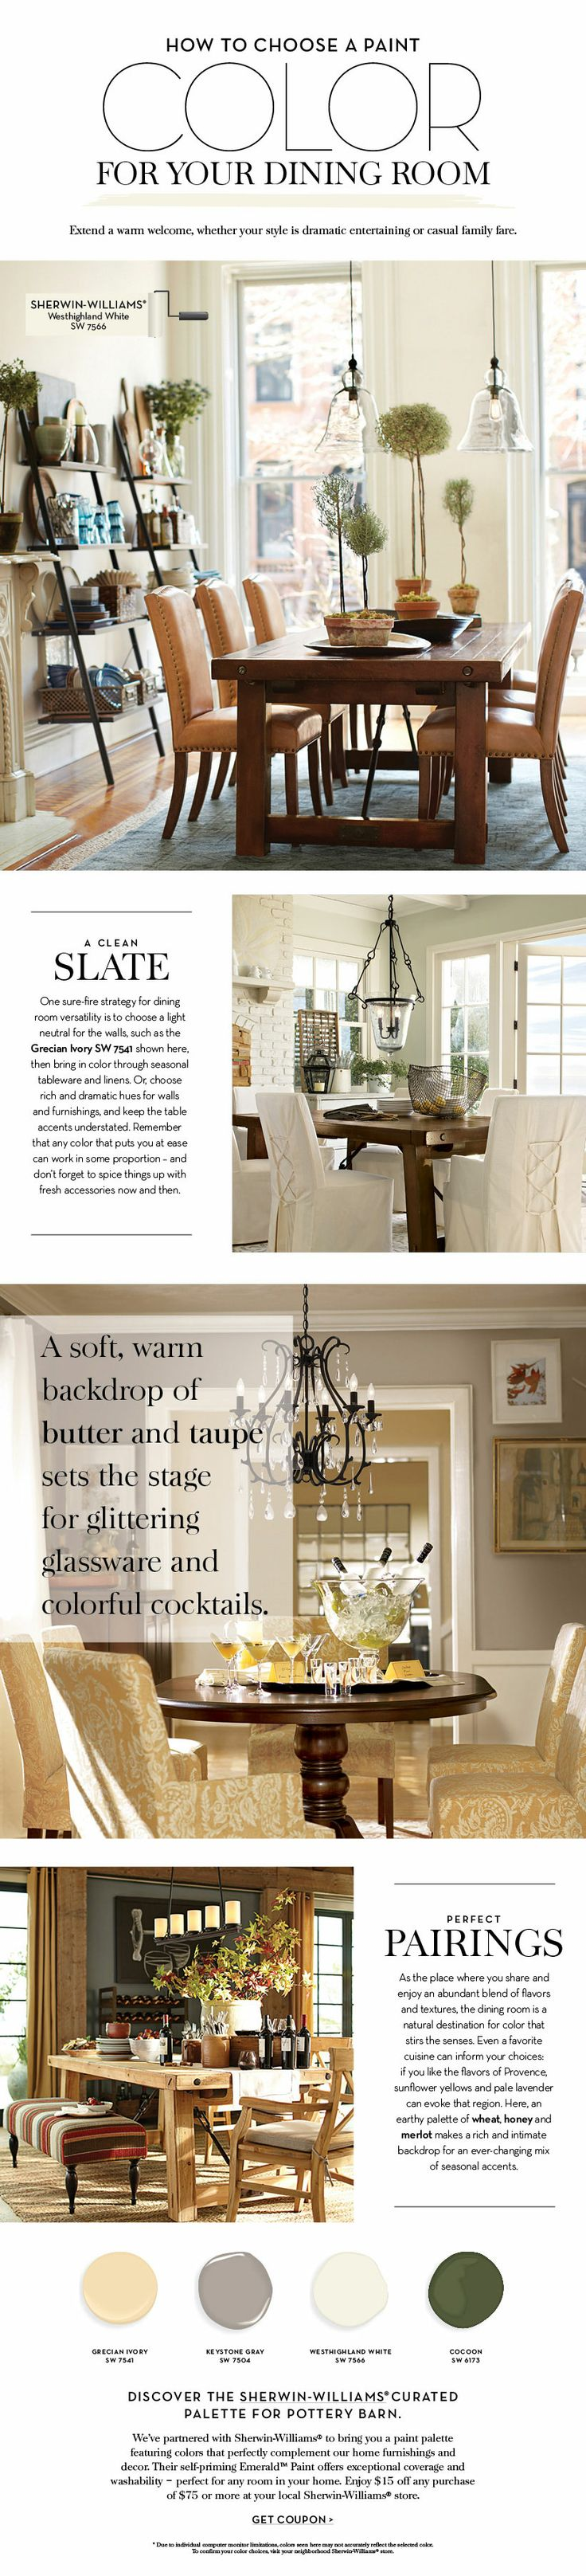 Ombre technique supplies and tips from sherwin williams - I Like The Provence Themed Room Choose A Paint Color For Your Dining Room Pottery